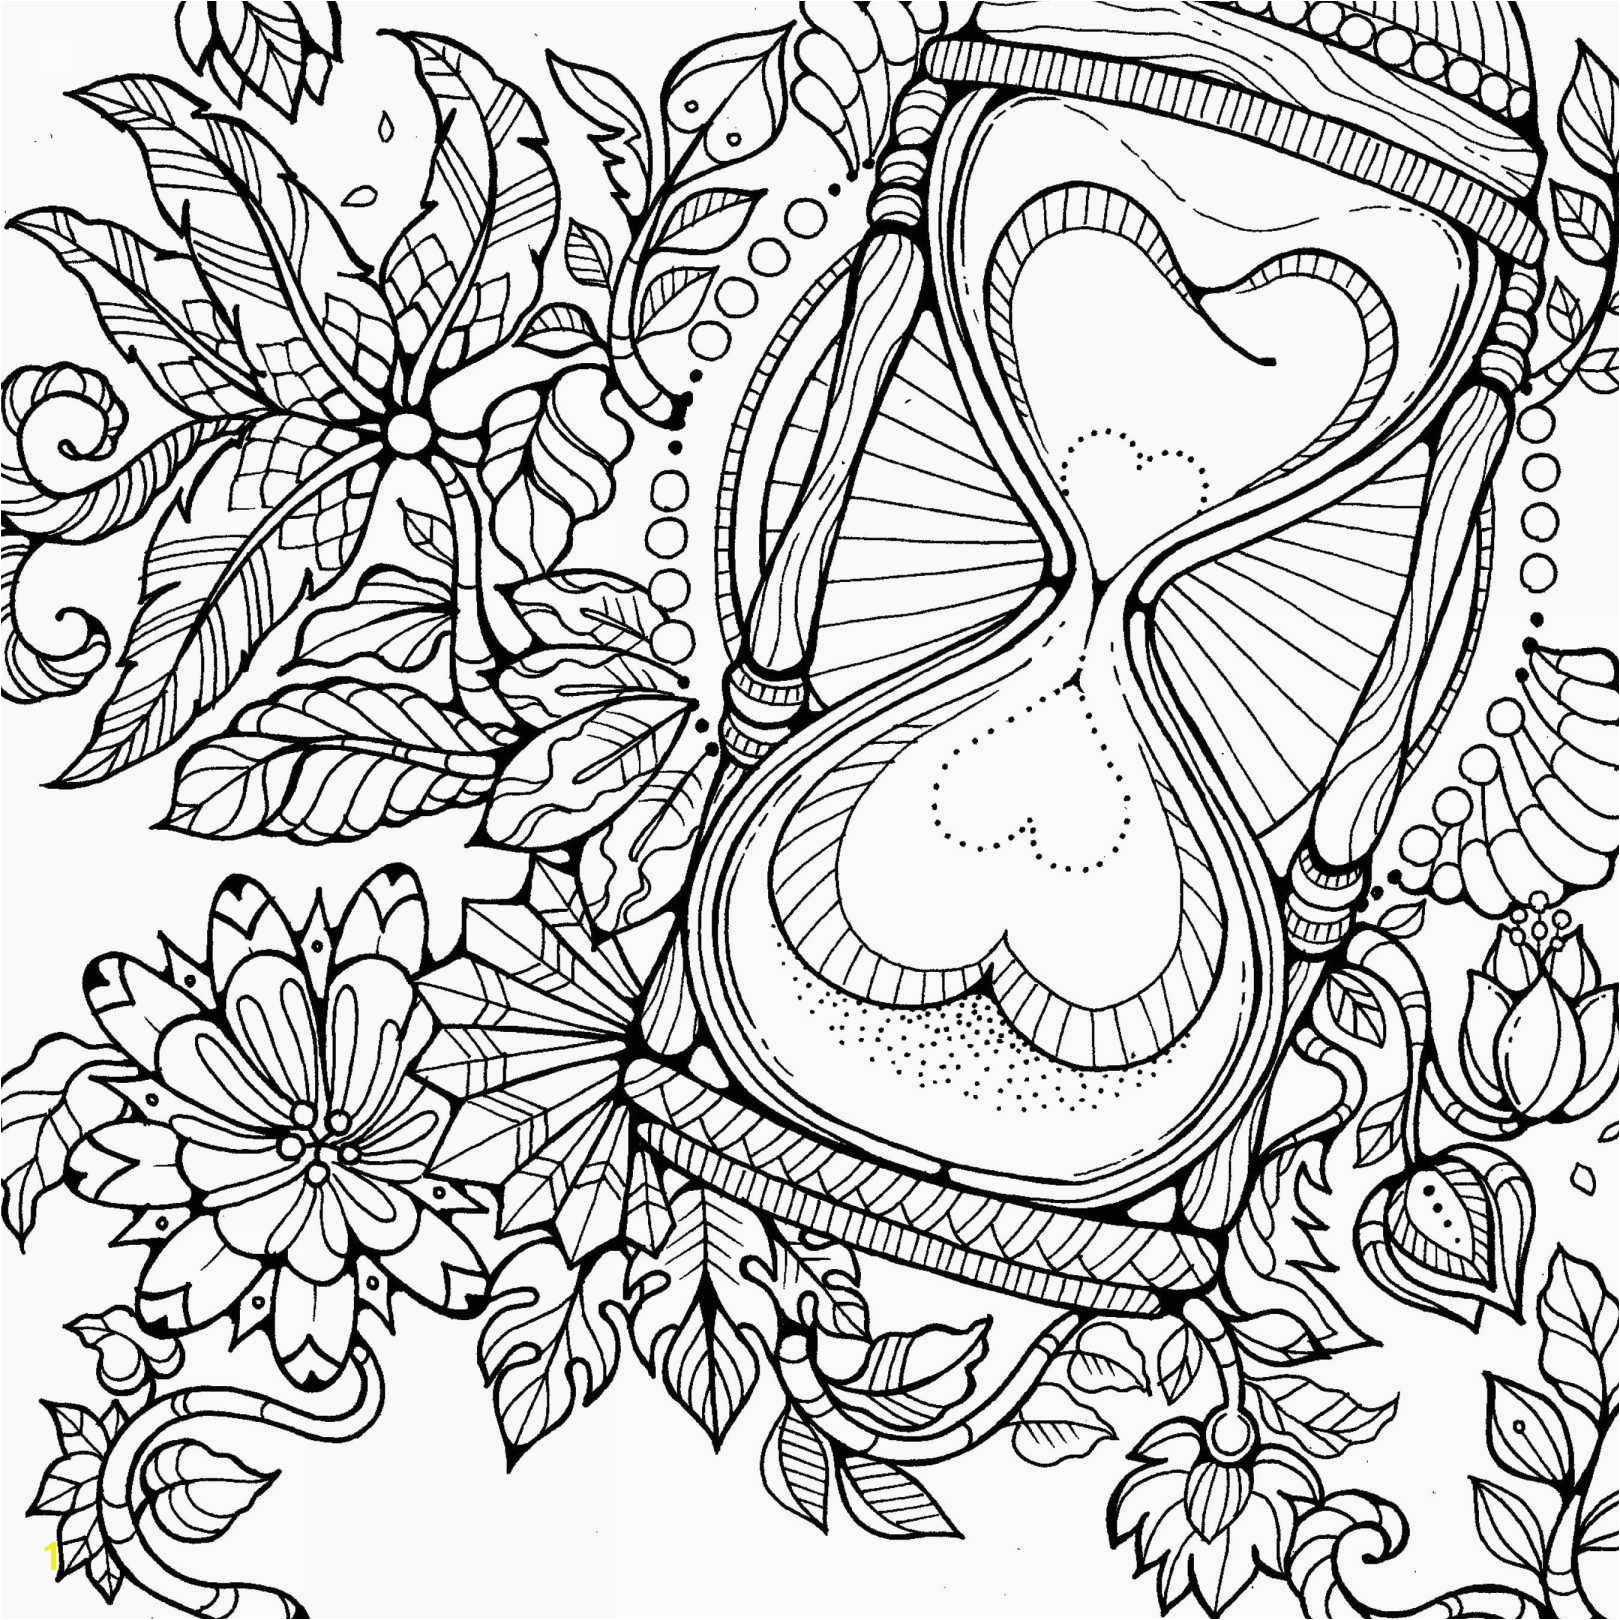 Coloring Pages Printable Inspirational Pages to Color New Color Page Luxury Multiplication Printables 0d Christmas Christmas Coloring Pages Mickey Mouse